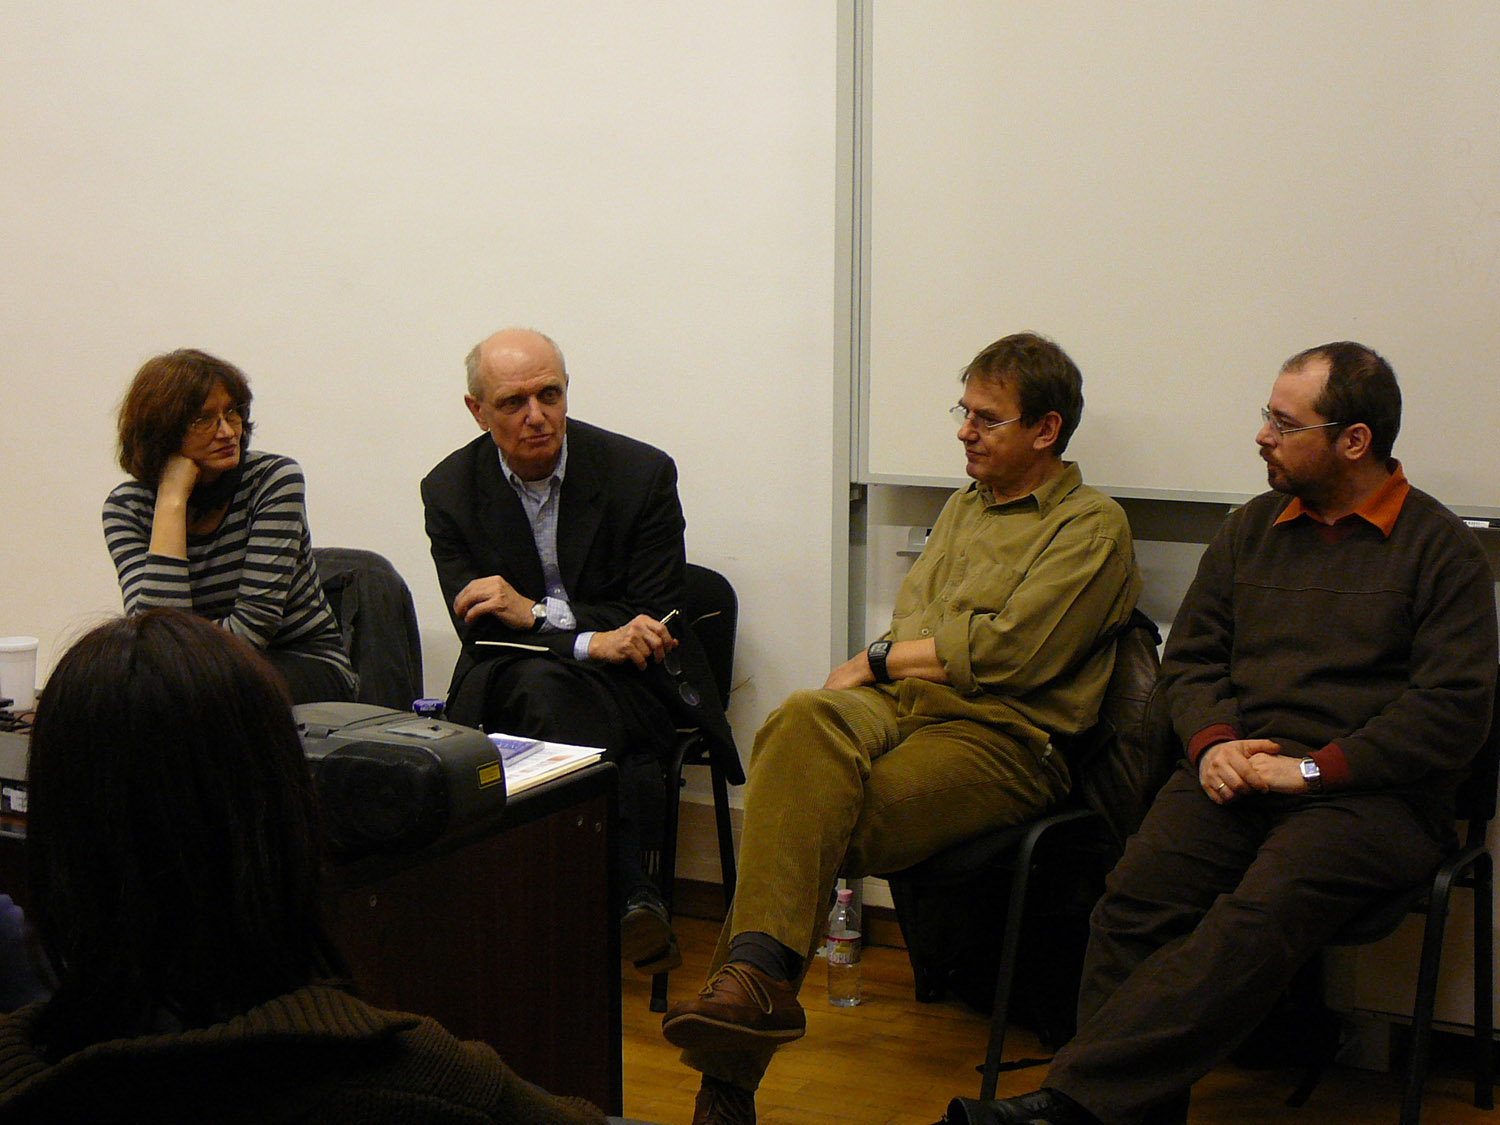 'Art and Subcultures in Late Socialist Hungary', presented by Julia Klaniczay and Péter György, March 11 2009. On the foto Julia Klaniczay, Péter György, Gábor Klaniczay, Balázs Trencsényi